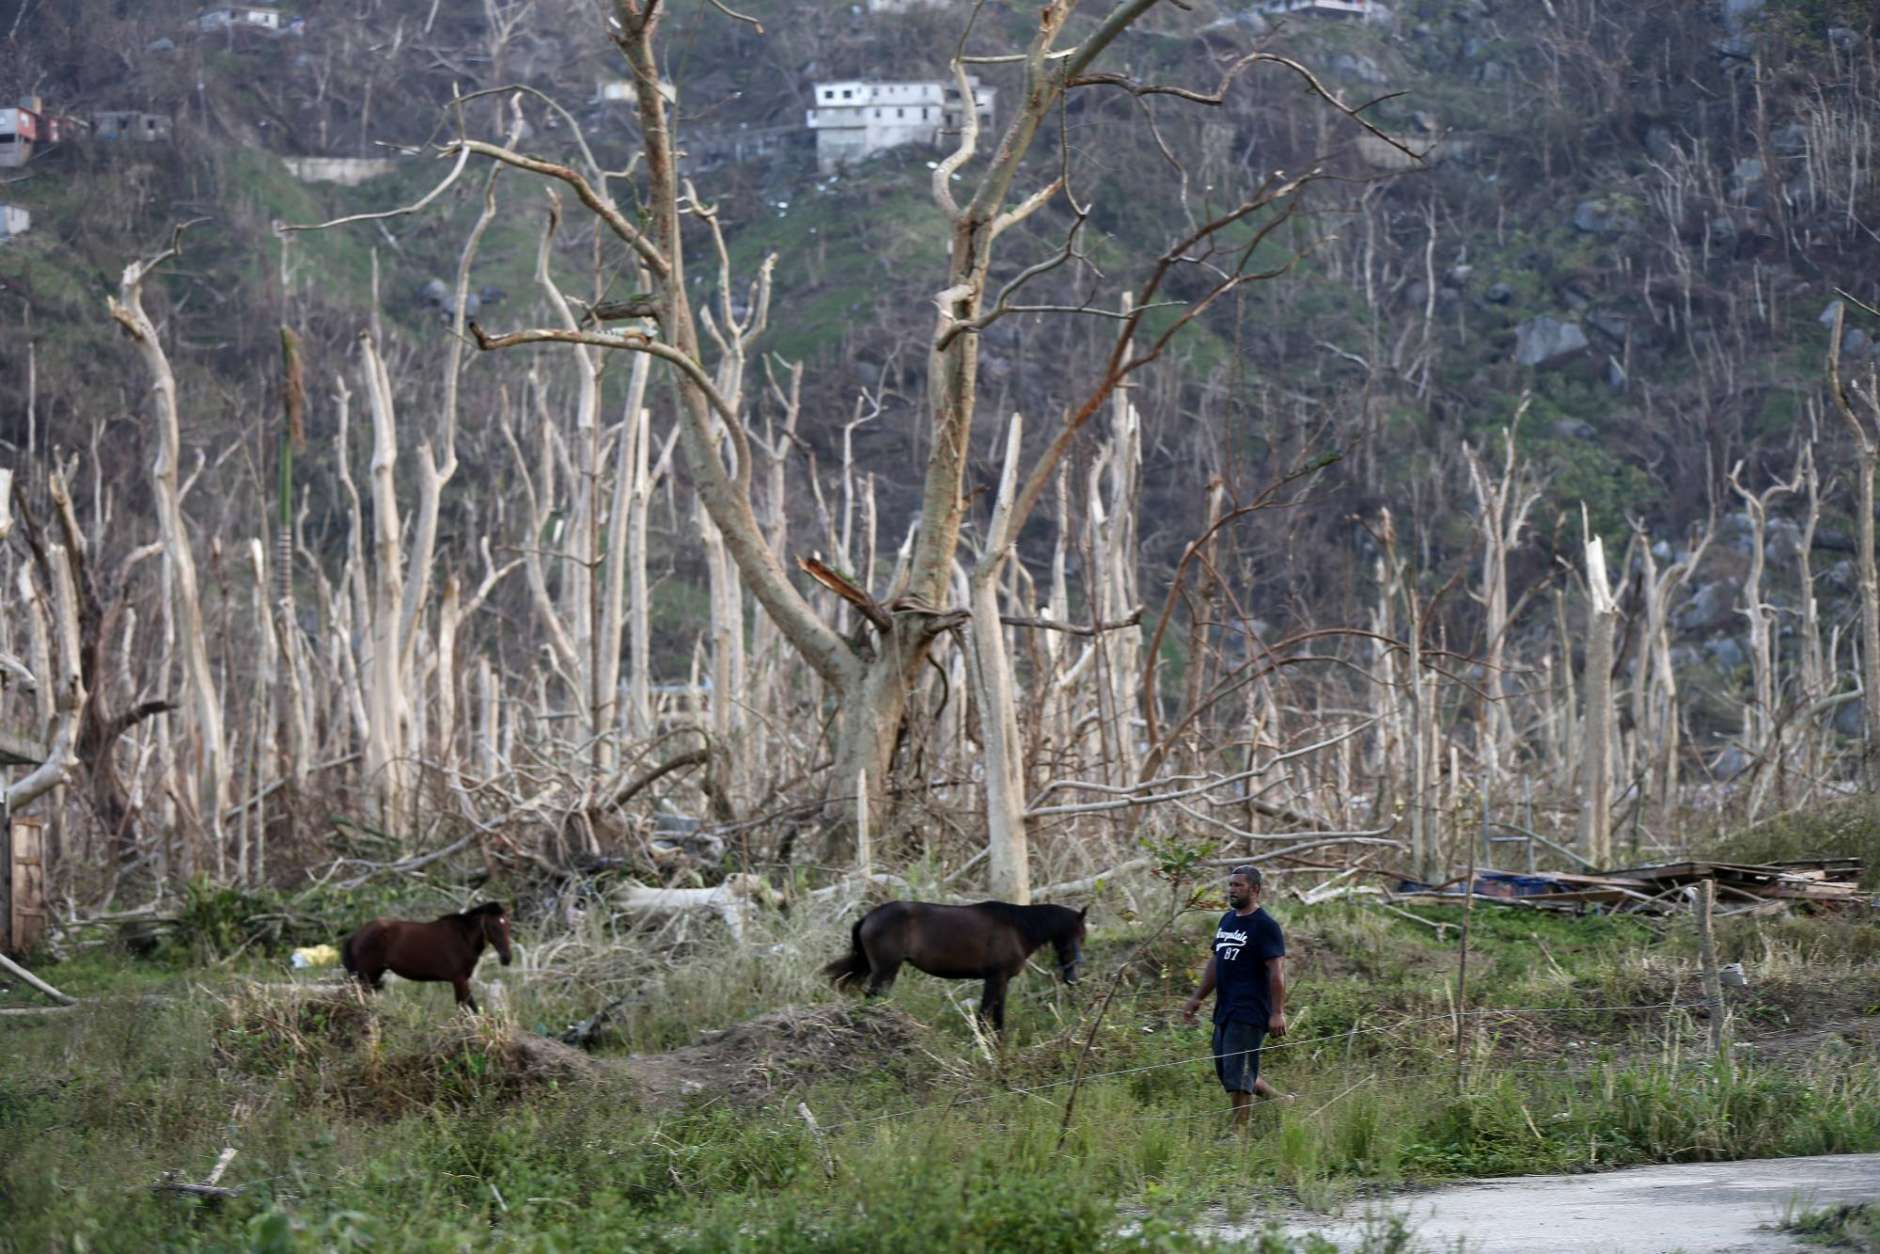 A man walks past horses and damaged trees in the aftermath of Hurricane Maria, in Yabucoa, Puerto Rico, Tuesday, Sept. 26, 2017. Governor Ricardo Rossello and Resident Commissioner Jennifer Gonzalez, the island's representative in Congress, have said they intend to seek more than a billion in federal assistance and they have praised the response to the disaster by President Donald Trump, who plans to visit Puerto Rico next week, as well as FEMA Administrator Brock Long.  (AP Photo/Gerald Herbert)